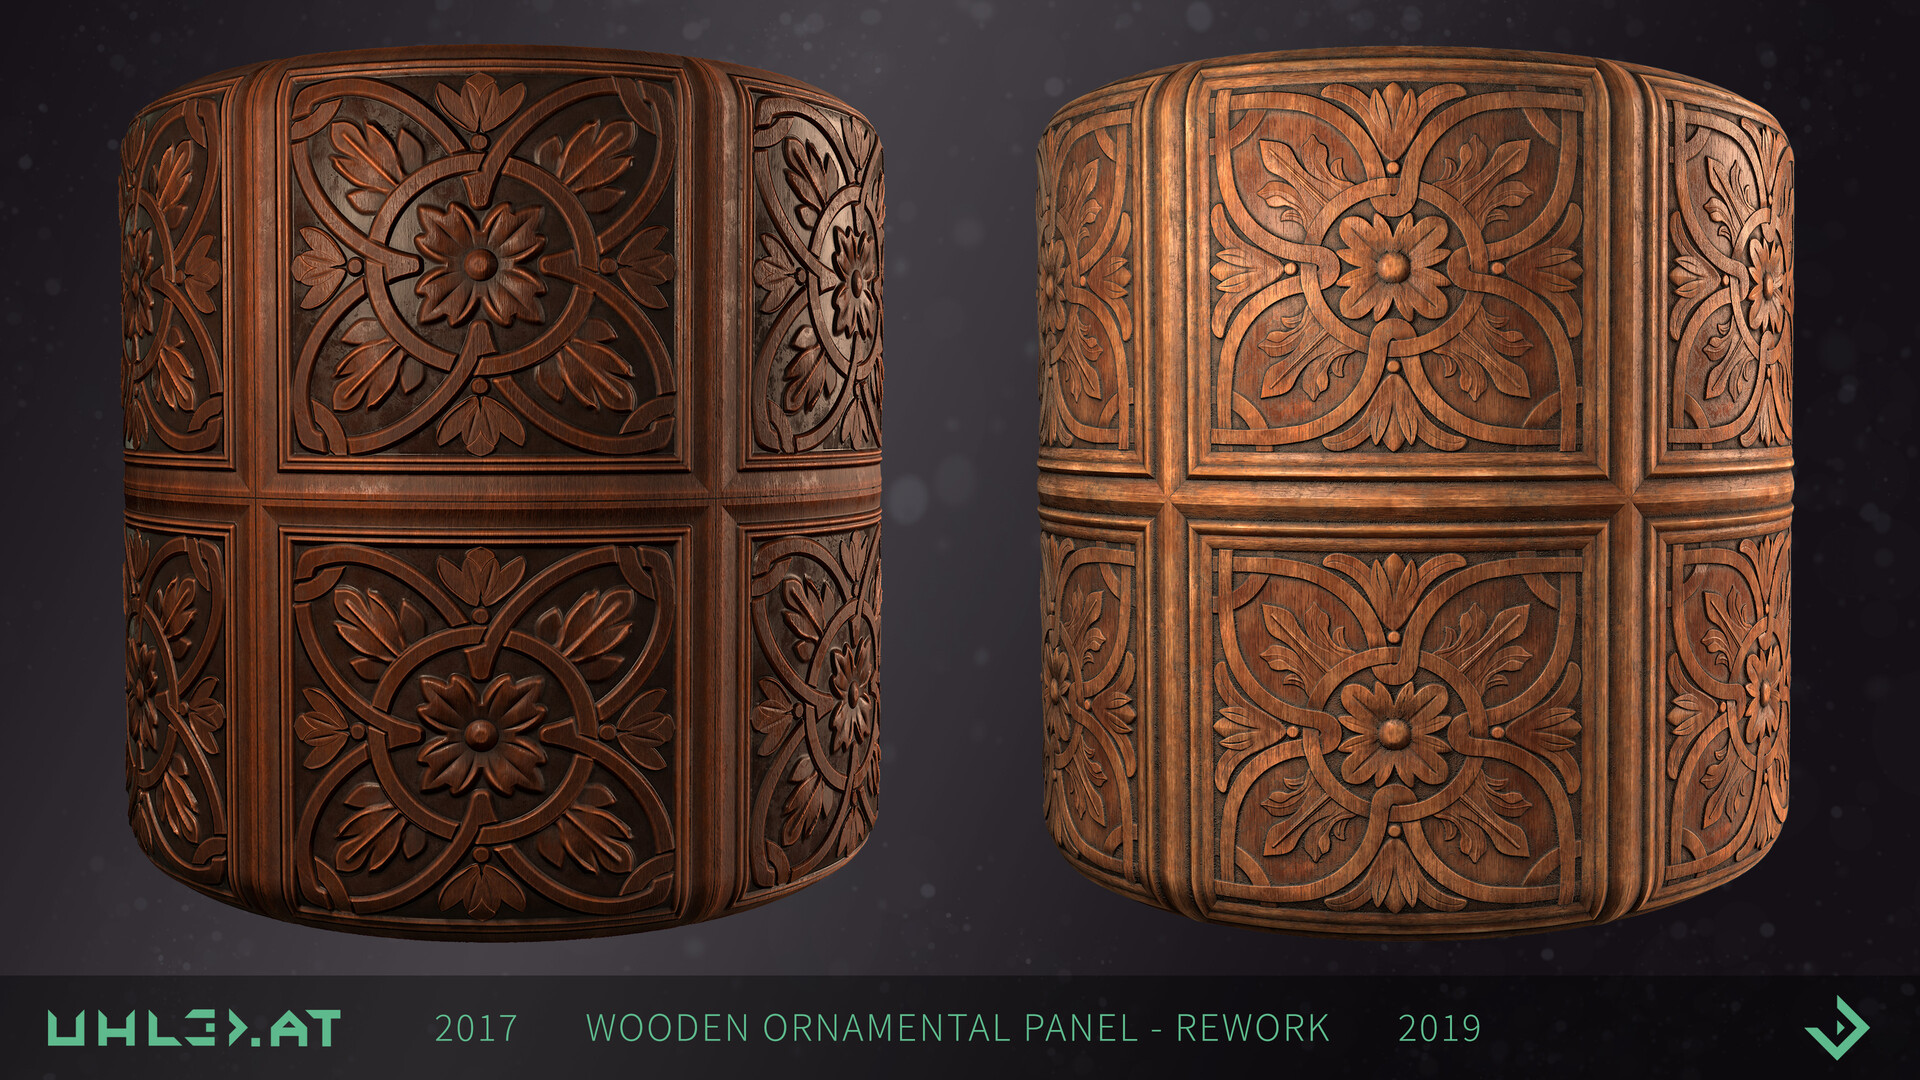 Dominik uhl wood panel ornament rework 08